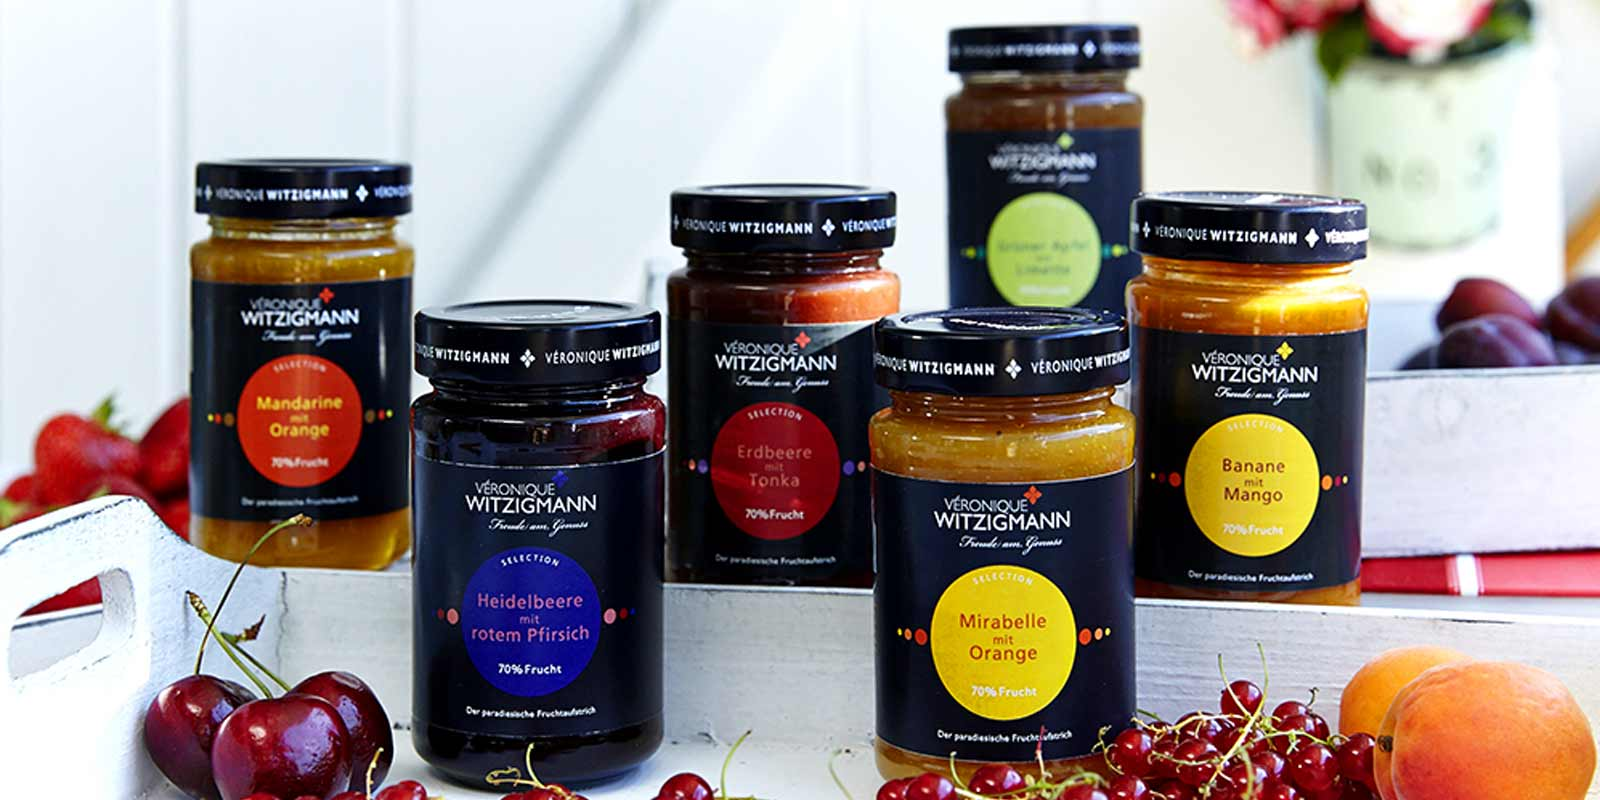 Veronique Witzigmann Jams, chutneys and pesto Delicious fruit spreads, chutneys and pesto in many flavors of Veronique Witzigmann.